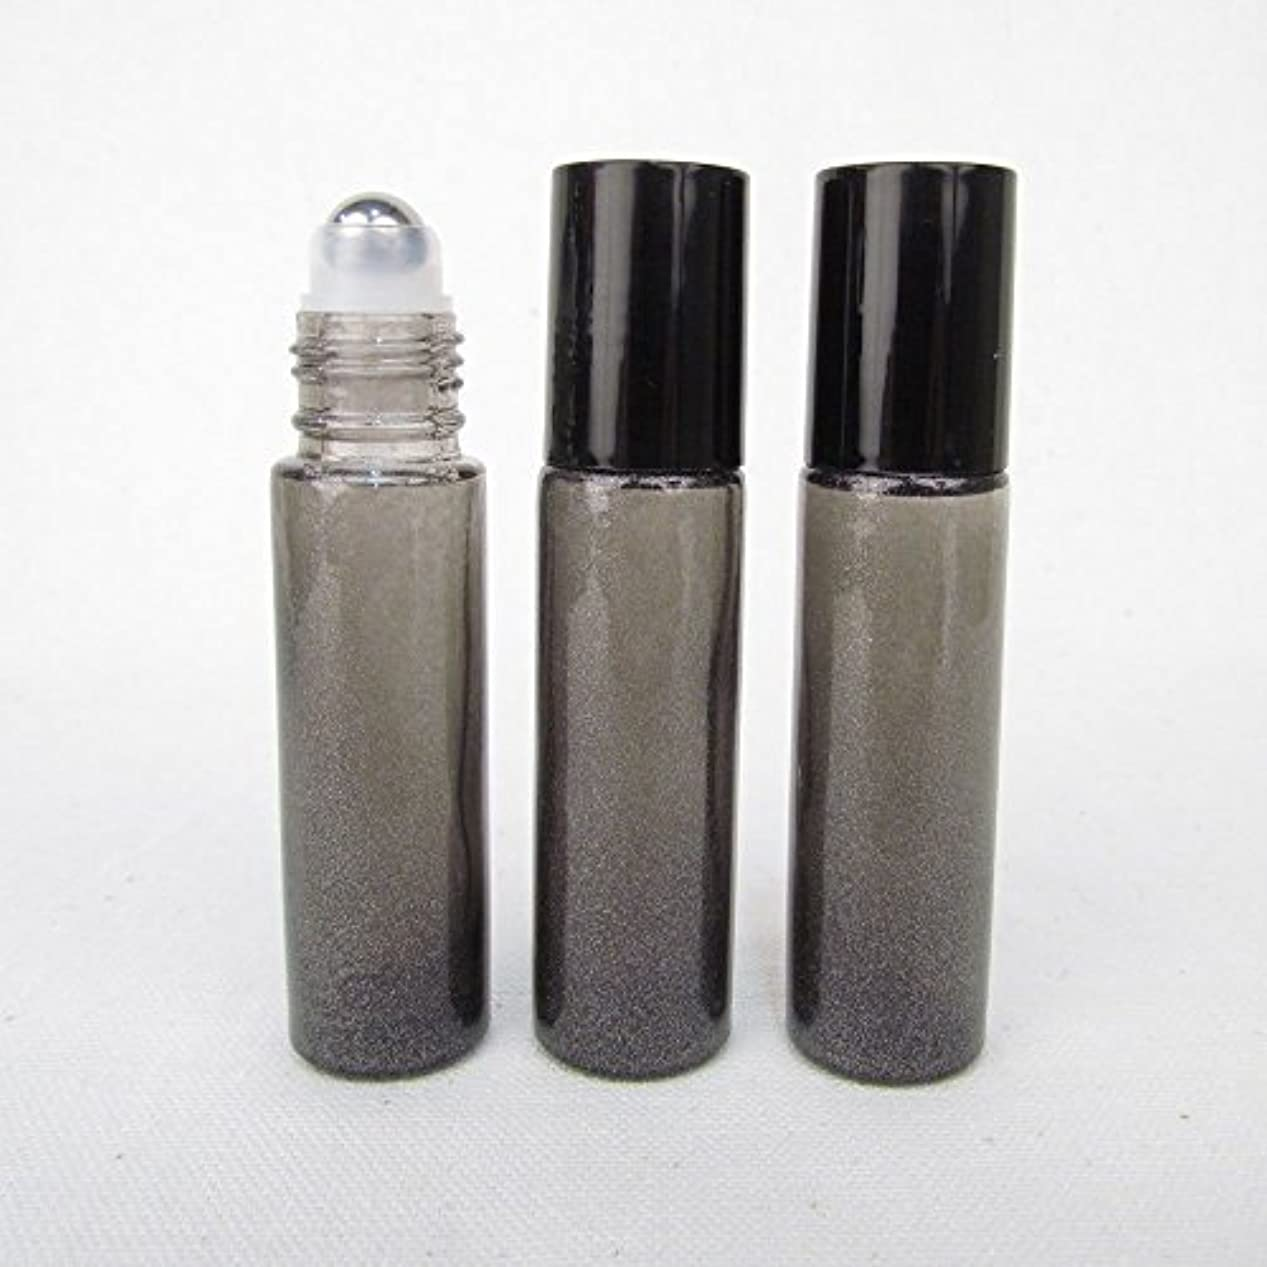 進化する乳製品冷凍庫Set of 3 Granite Gray Color 10ml Roll on Bottle with Stainless Steel Ball for Essential Oil Products by Rivertree...